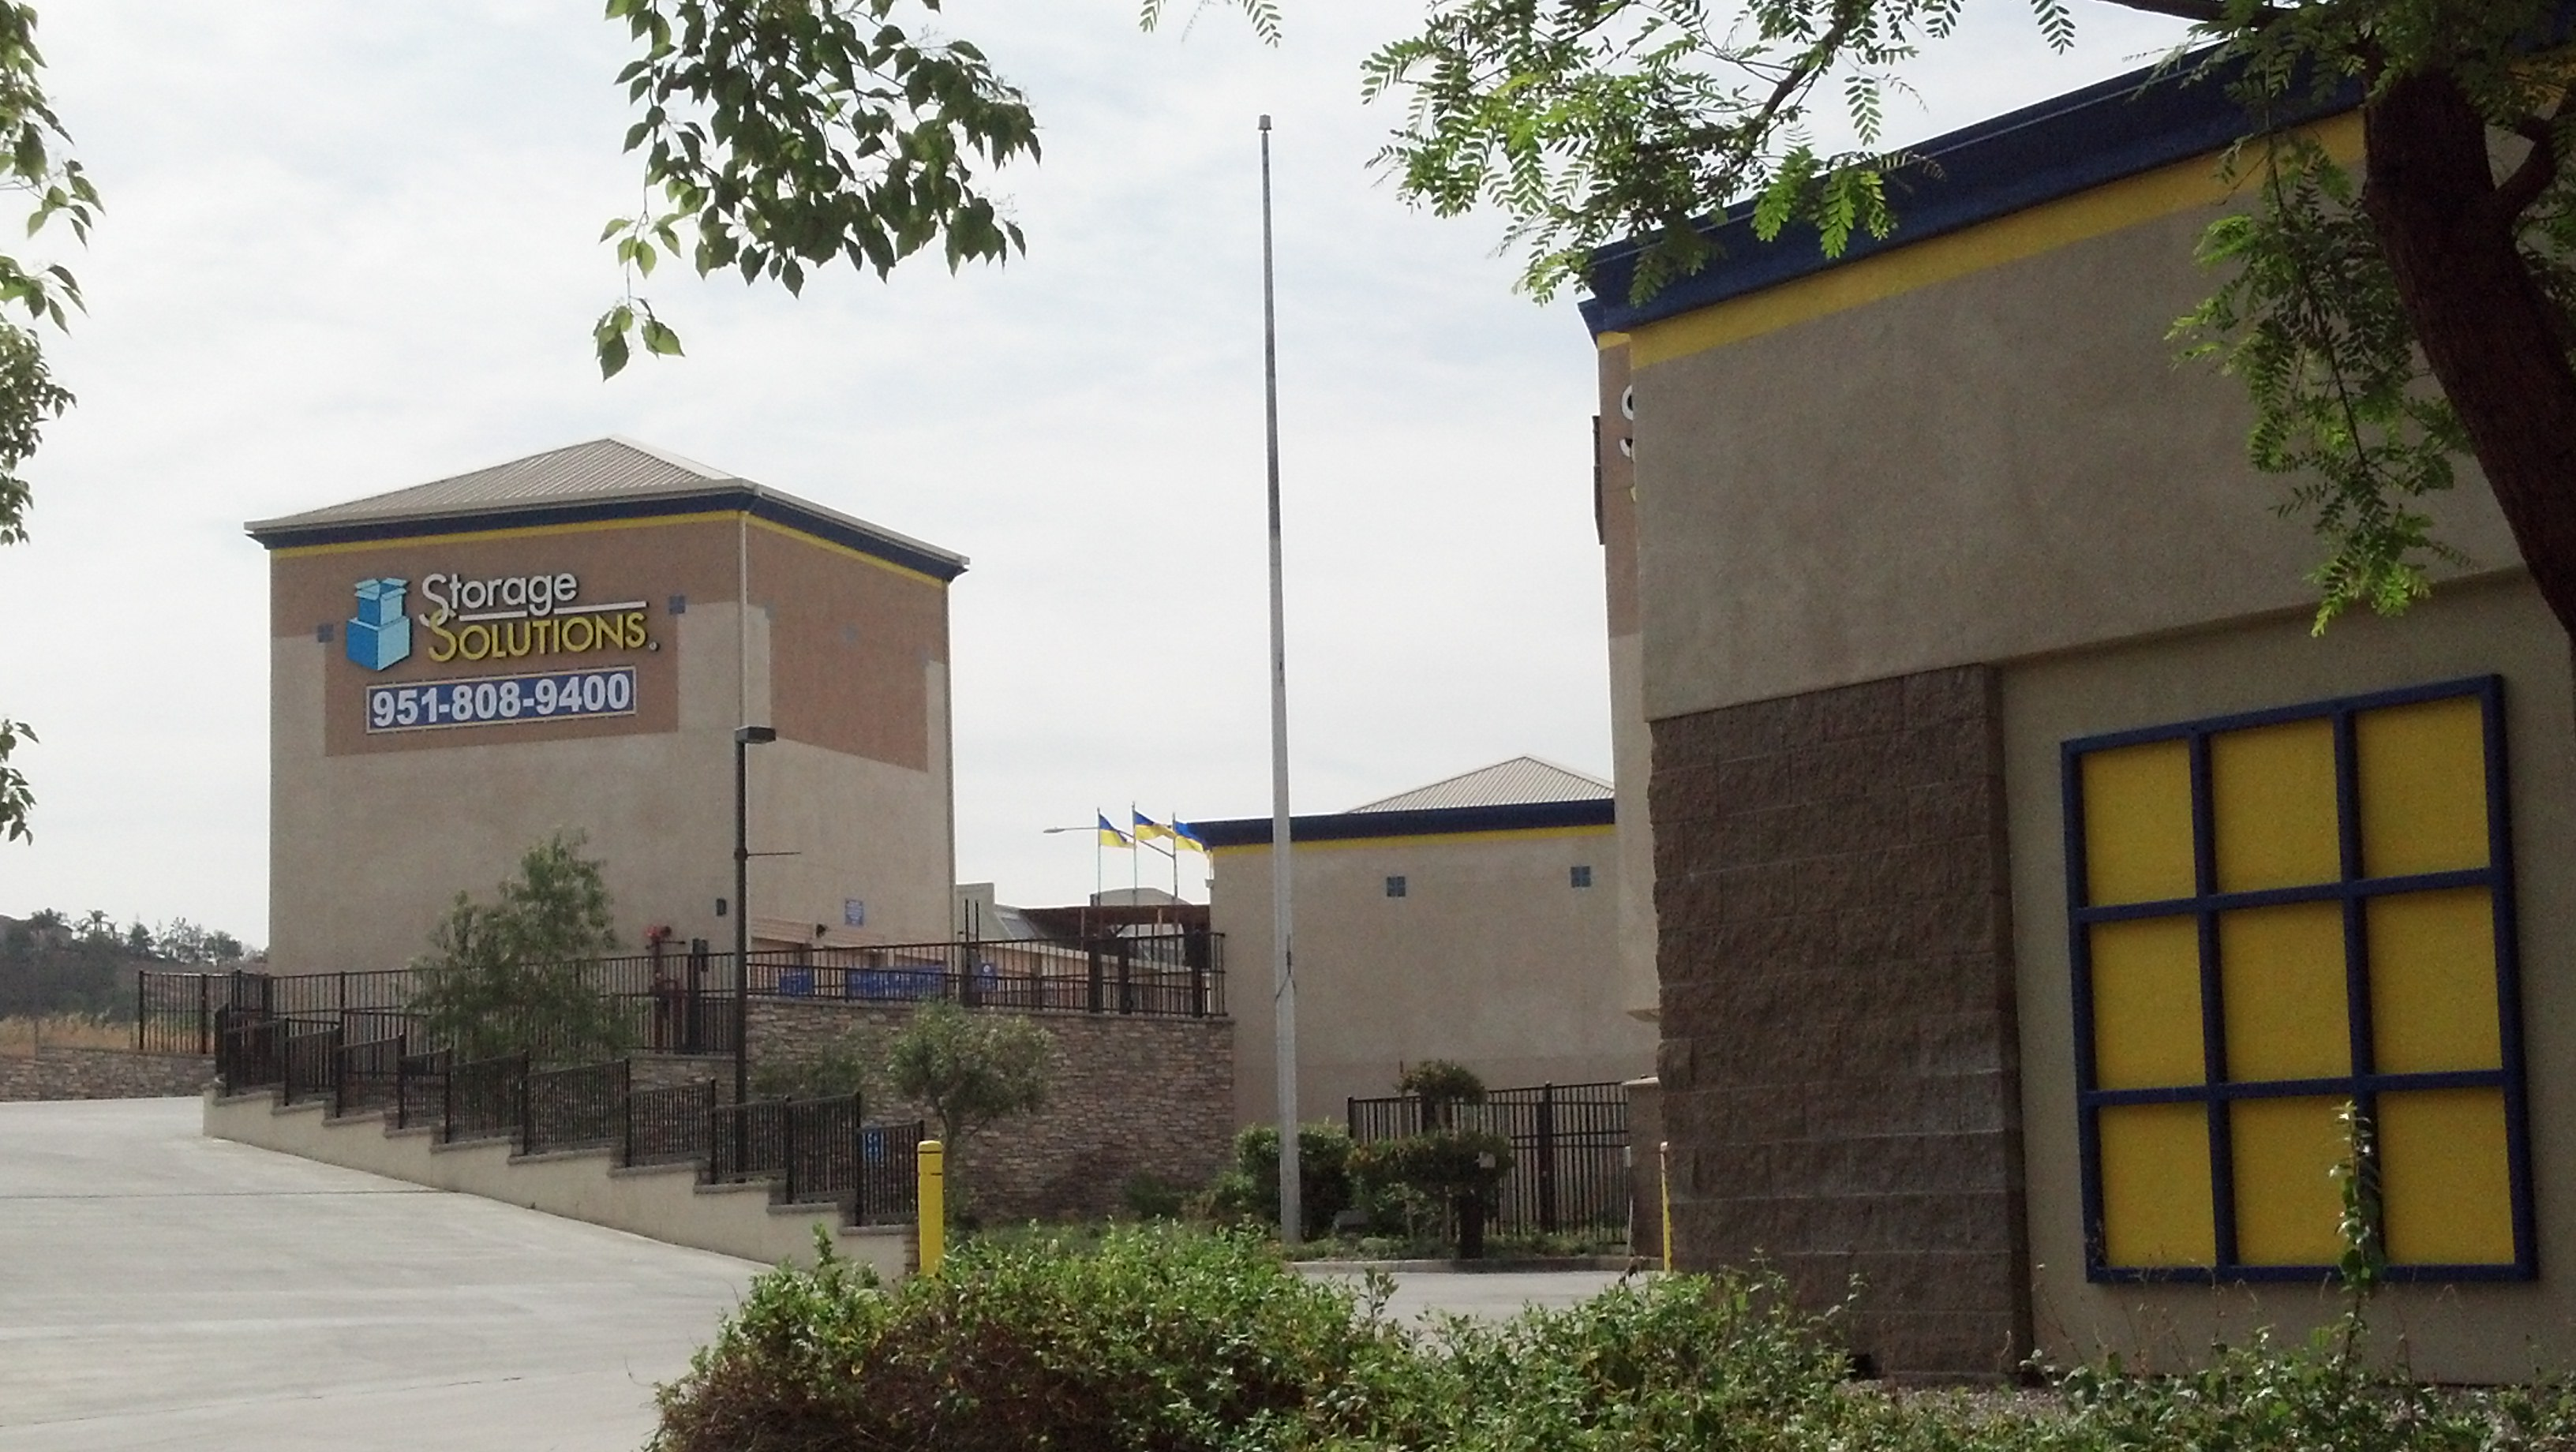 Norco Self Storage | Storage Solutions in Norco, CA 92860